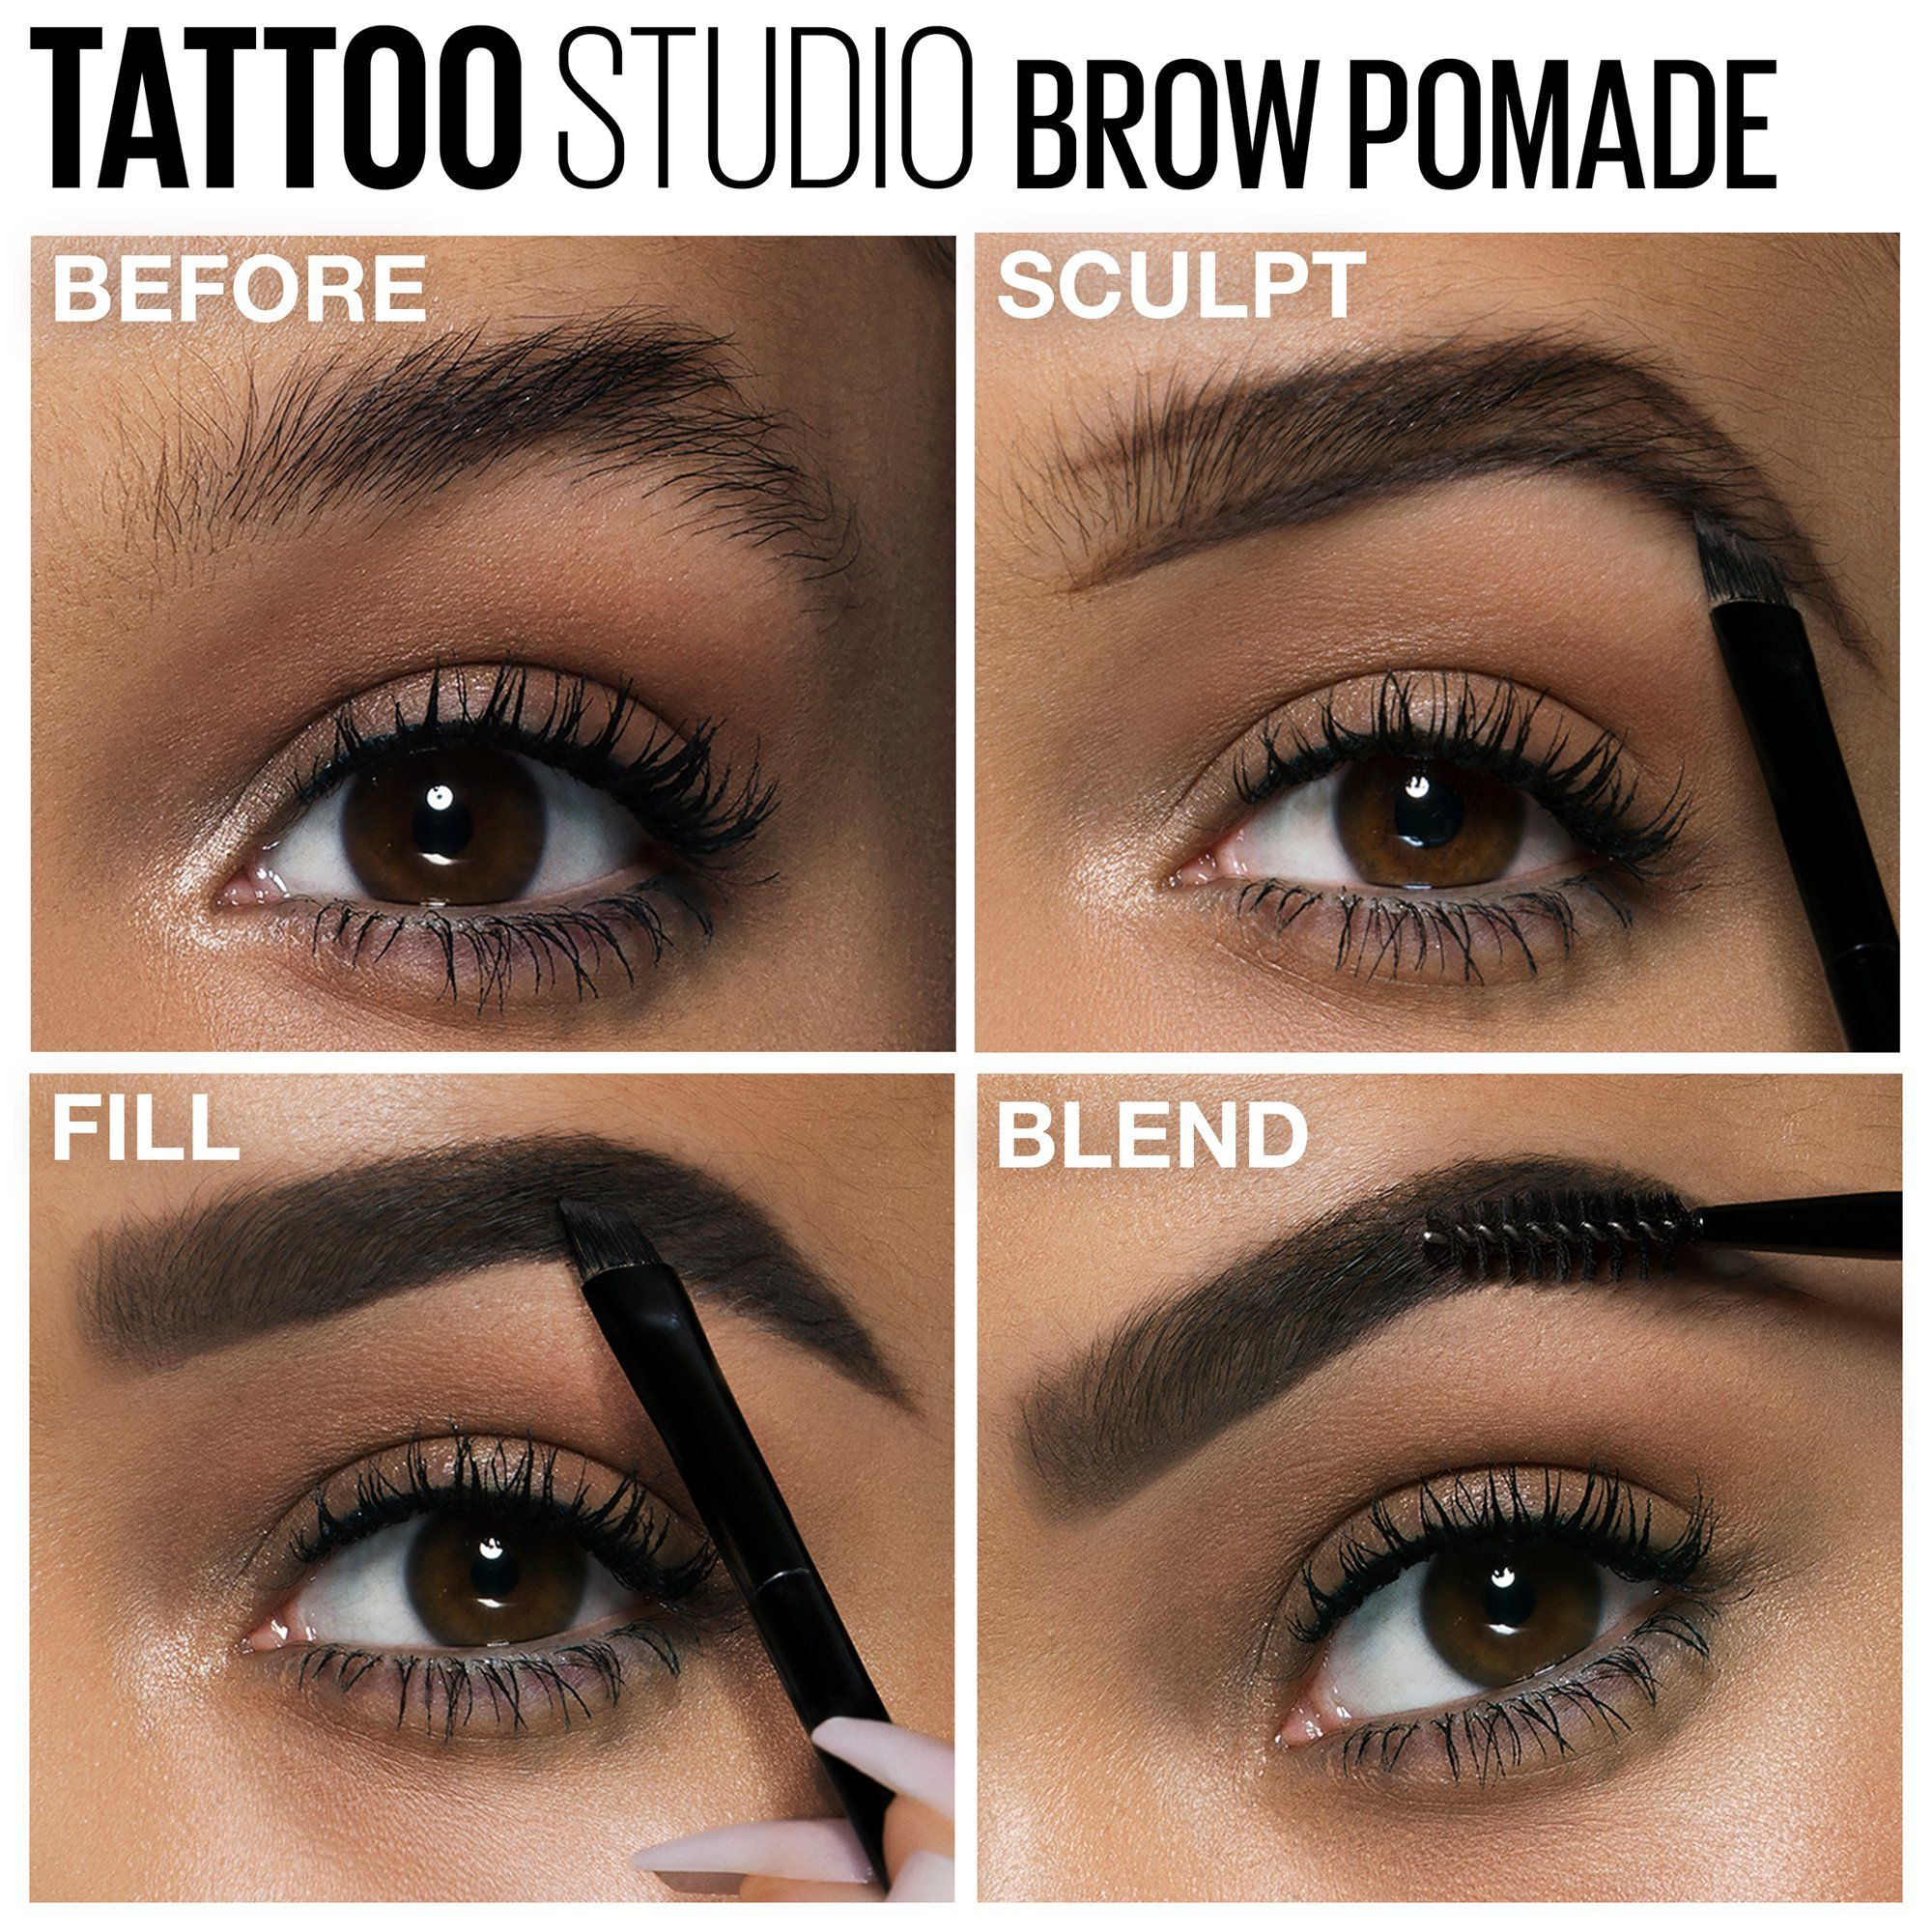 Maybelline Tattoostudio Brow Pomade Long Lasting Buildable Eyebrow Makeup Medium Brown 0 106 Oz Walmart Com In 2020 Eyebrow Makeup Eye Makeup Tutorial Eye Makeup